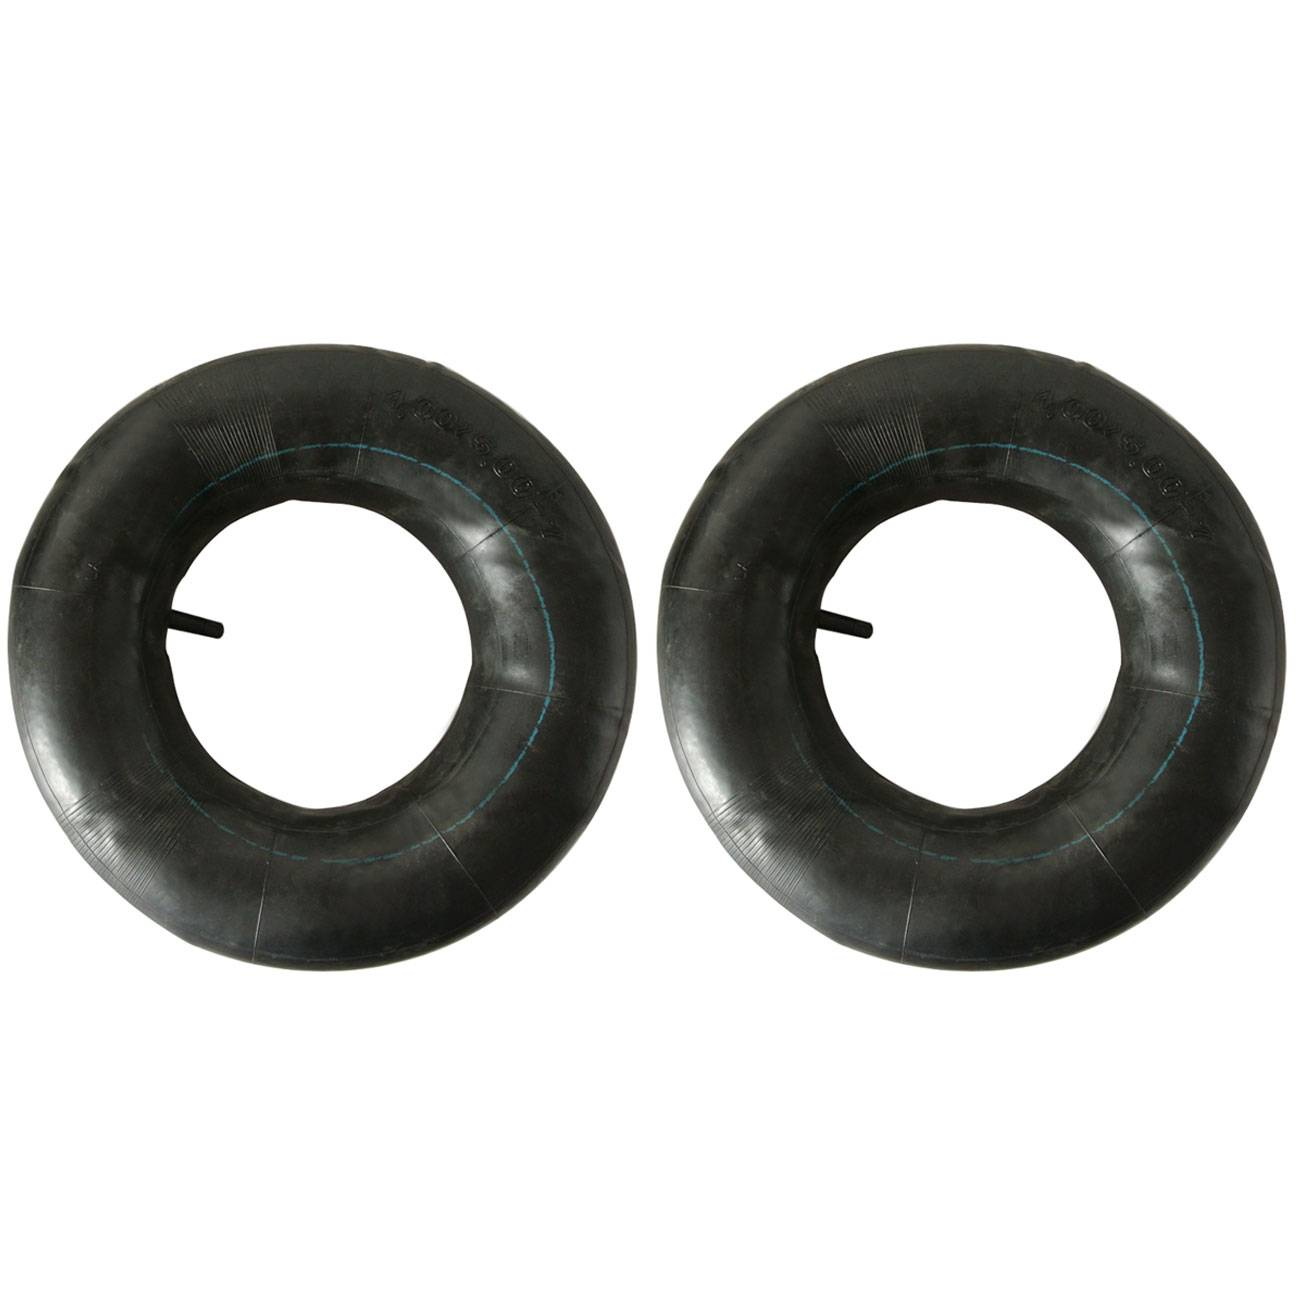 2PC 16 x8.0-7 4.00/5.00-7 Tire Inner Tube Rubber Valve For 7 ATV QUAD GO KART